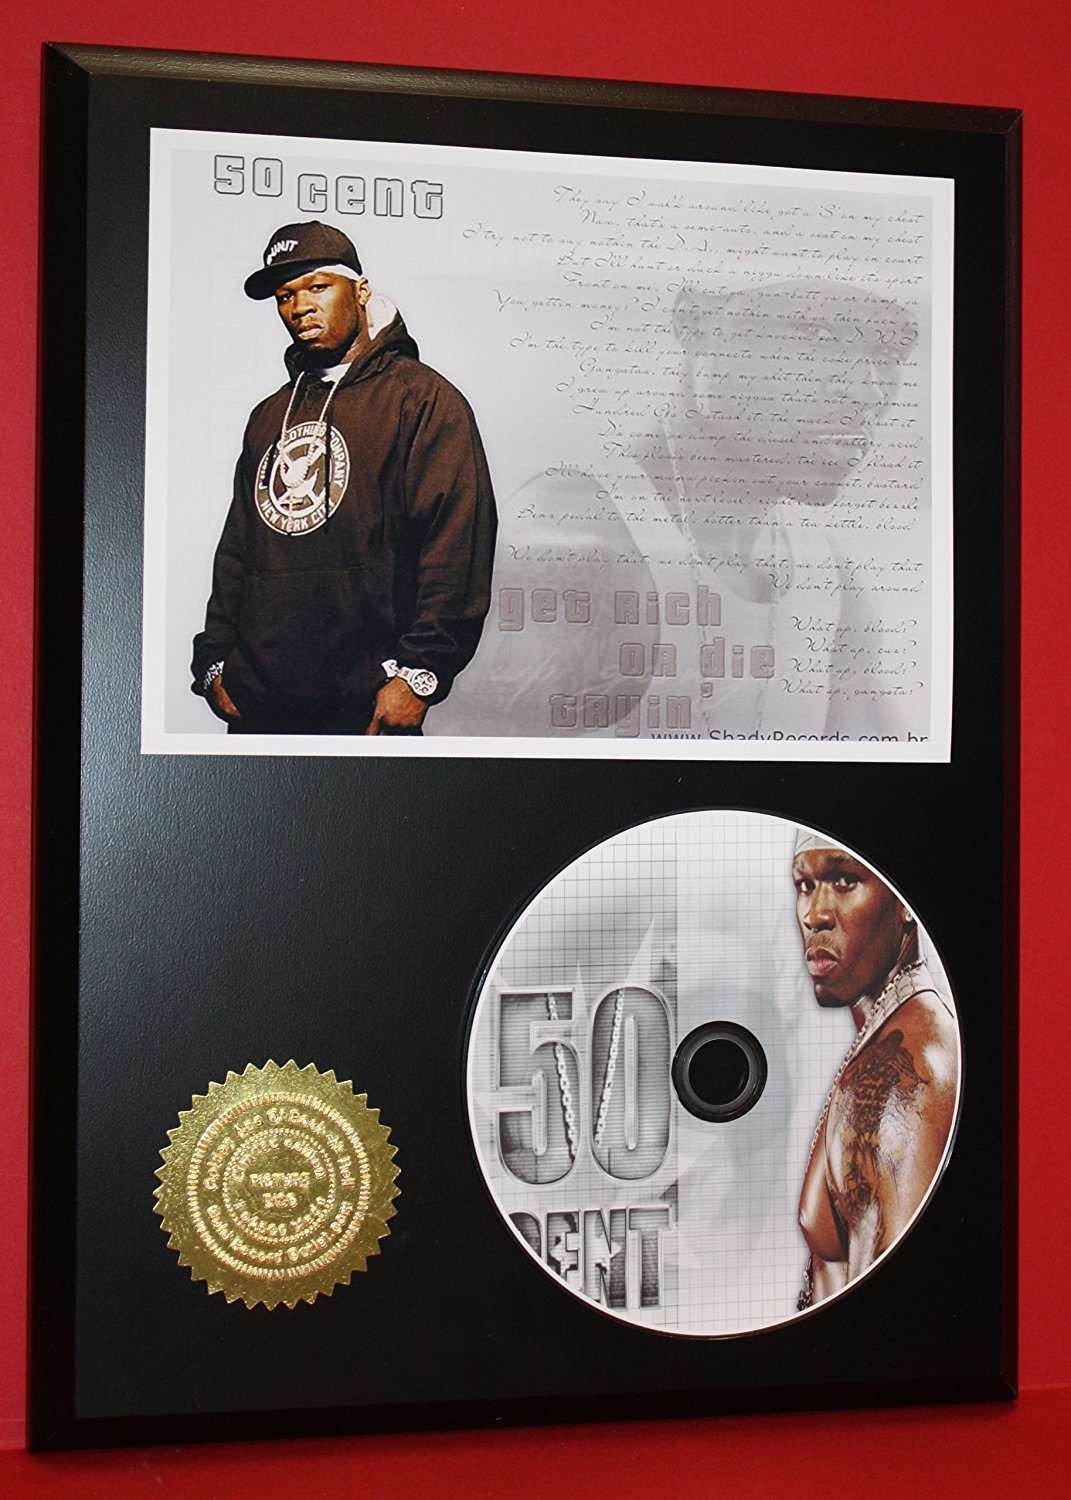 50 Cent Limited Edition Picture Disc CD Rare Collectible Rap Music Display